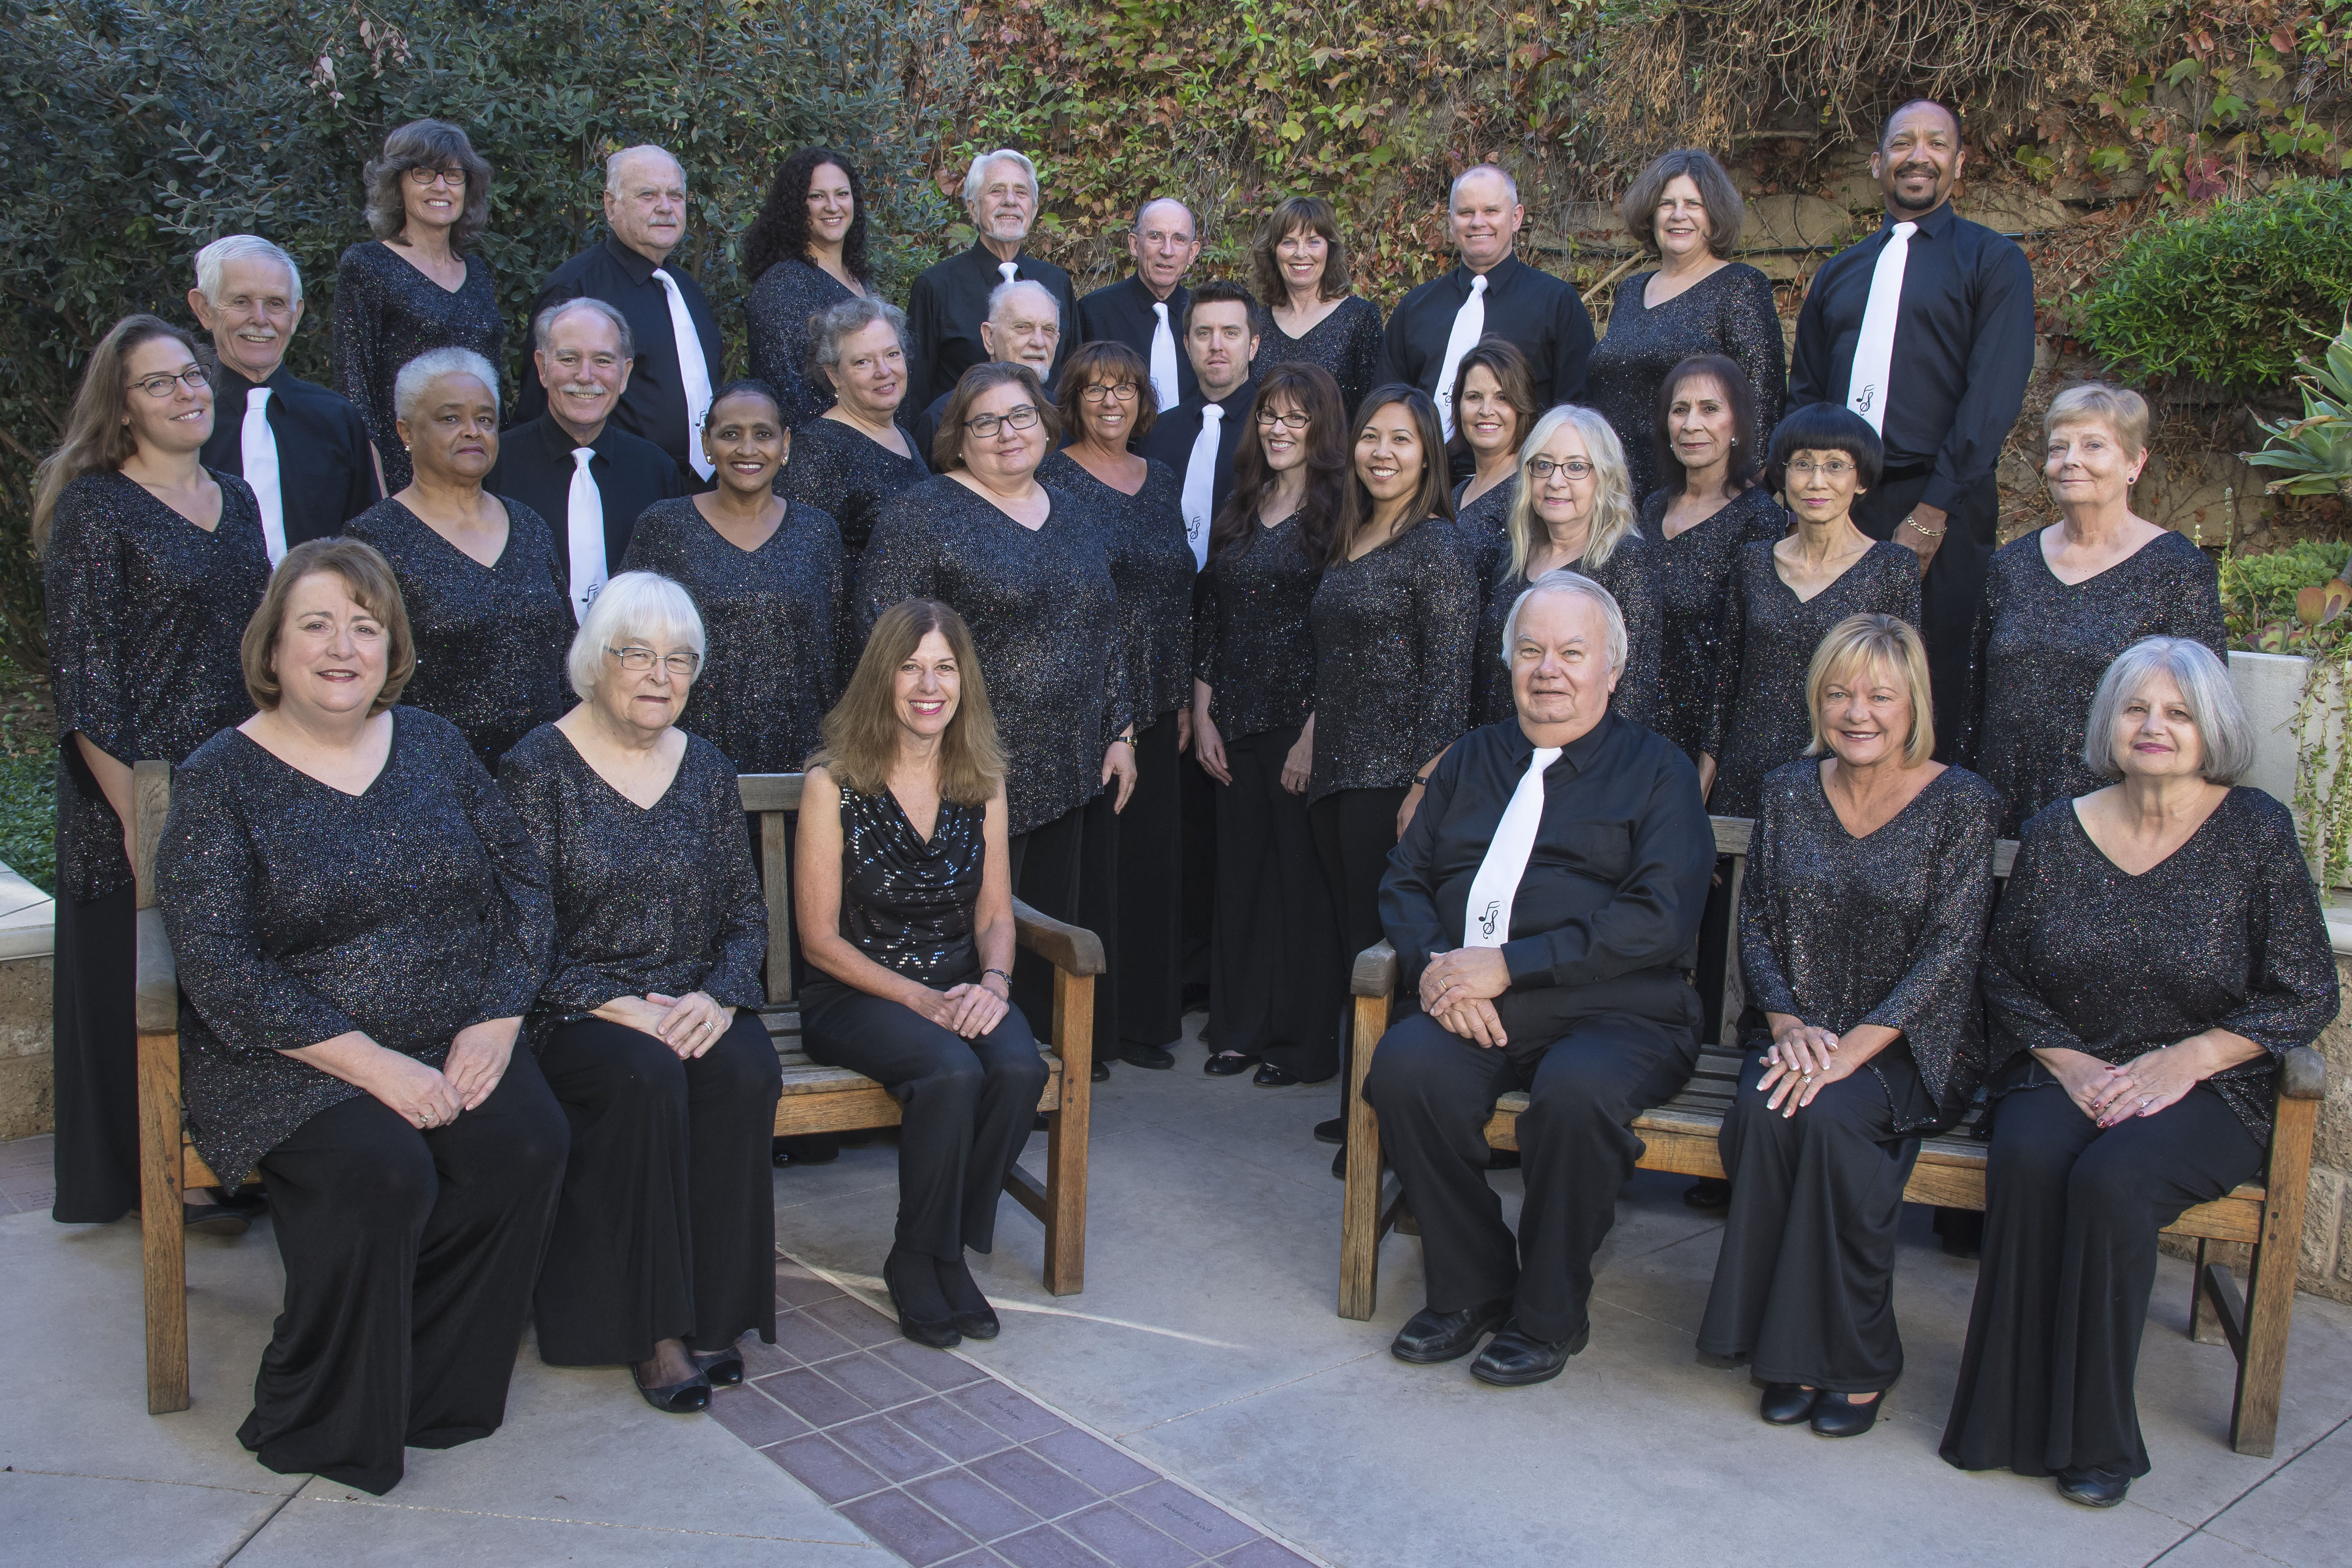 Festival Singers (Photo by Daniel Wilson Photography)